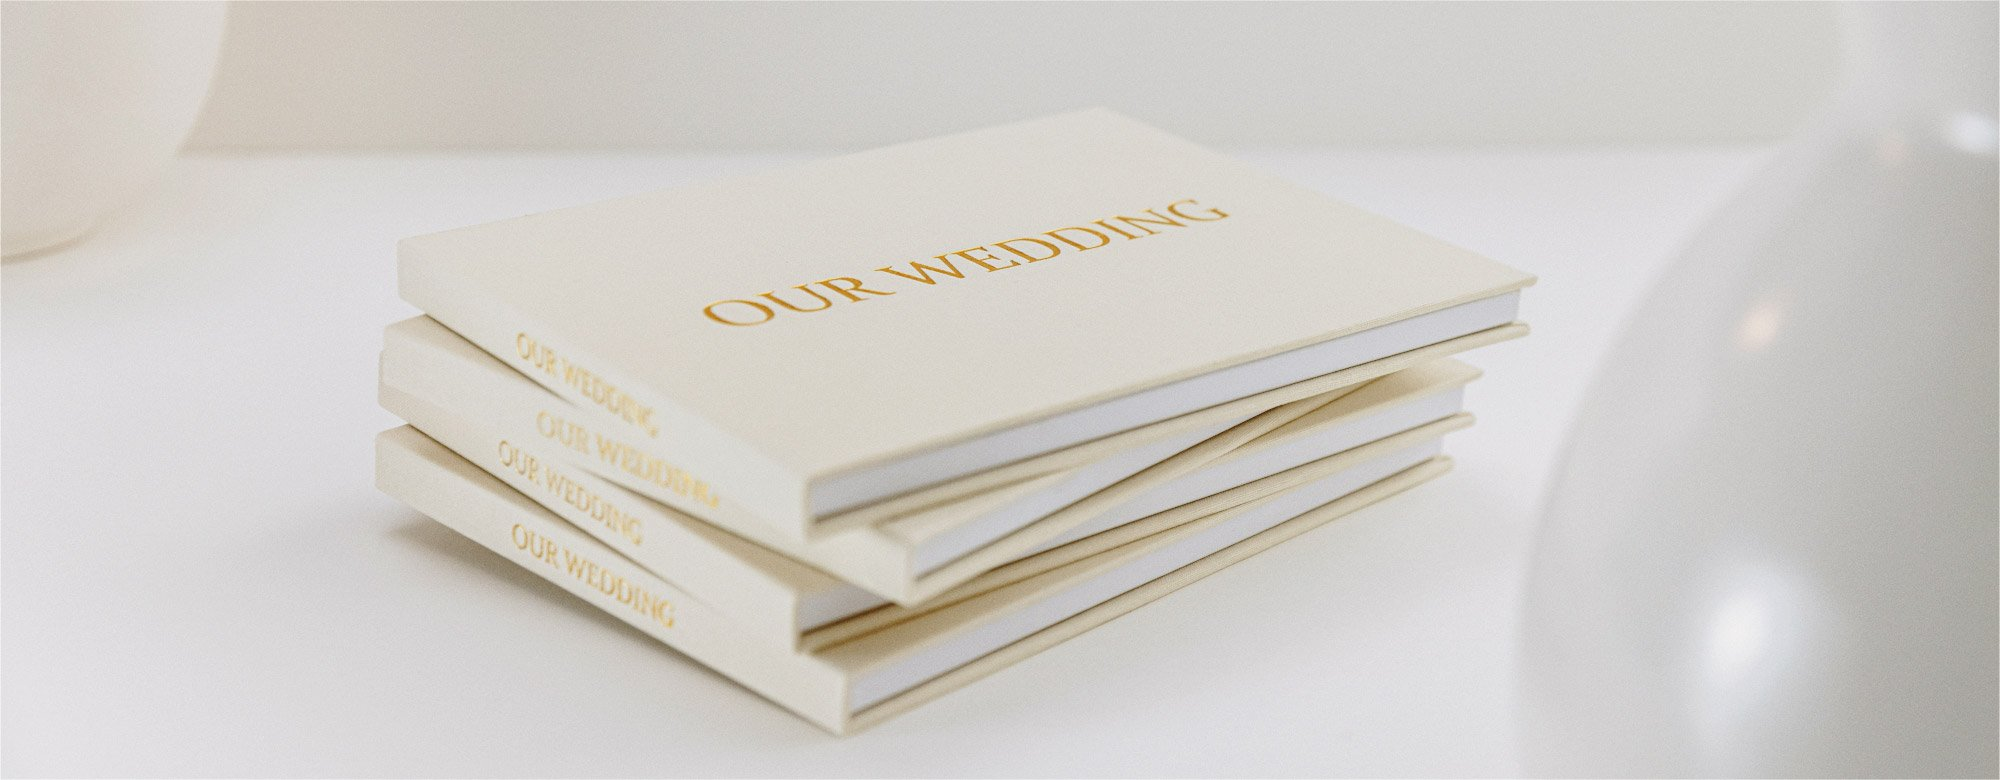 Wedding Video Book - Perfect Wedding Gift Idea - The Motion Books